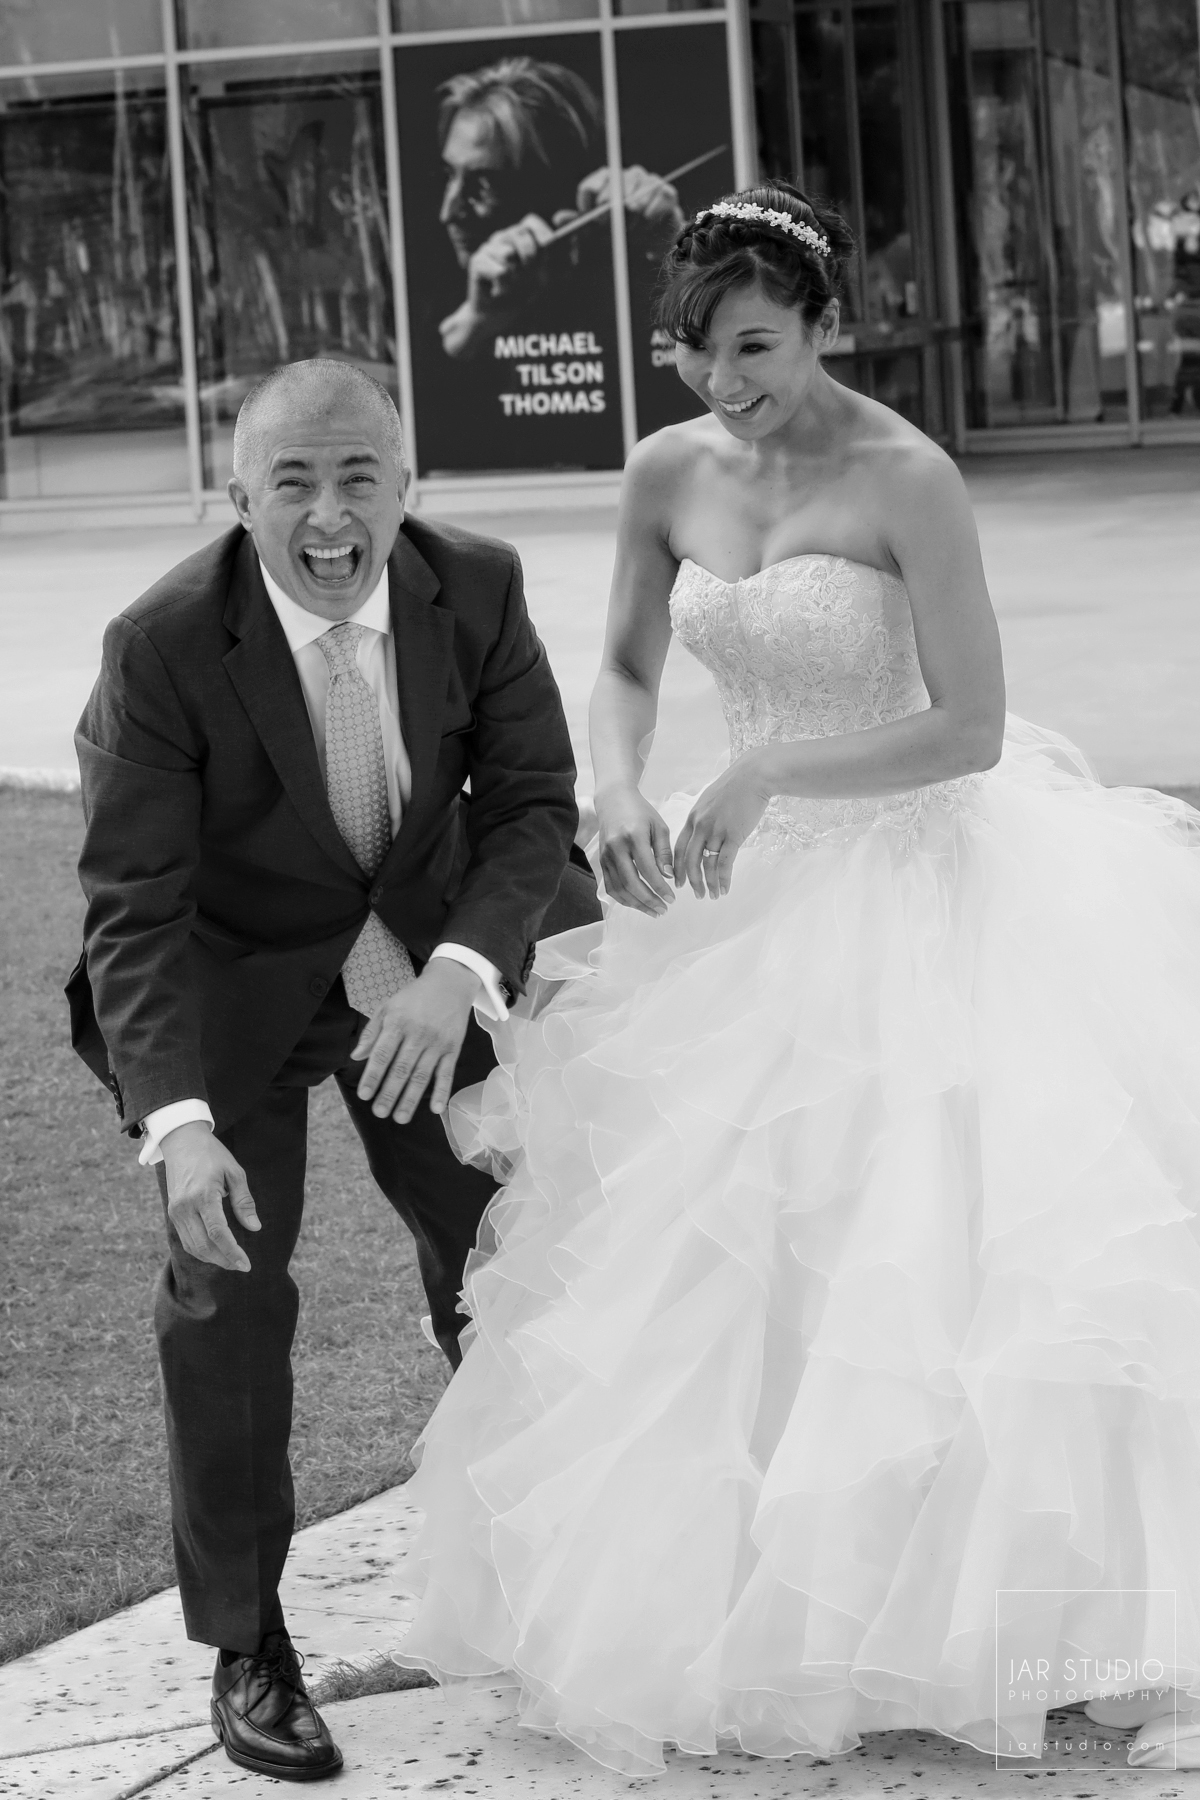 10-pre-wedding-bride-groom-jarstudio-miami.JPG